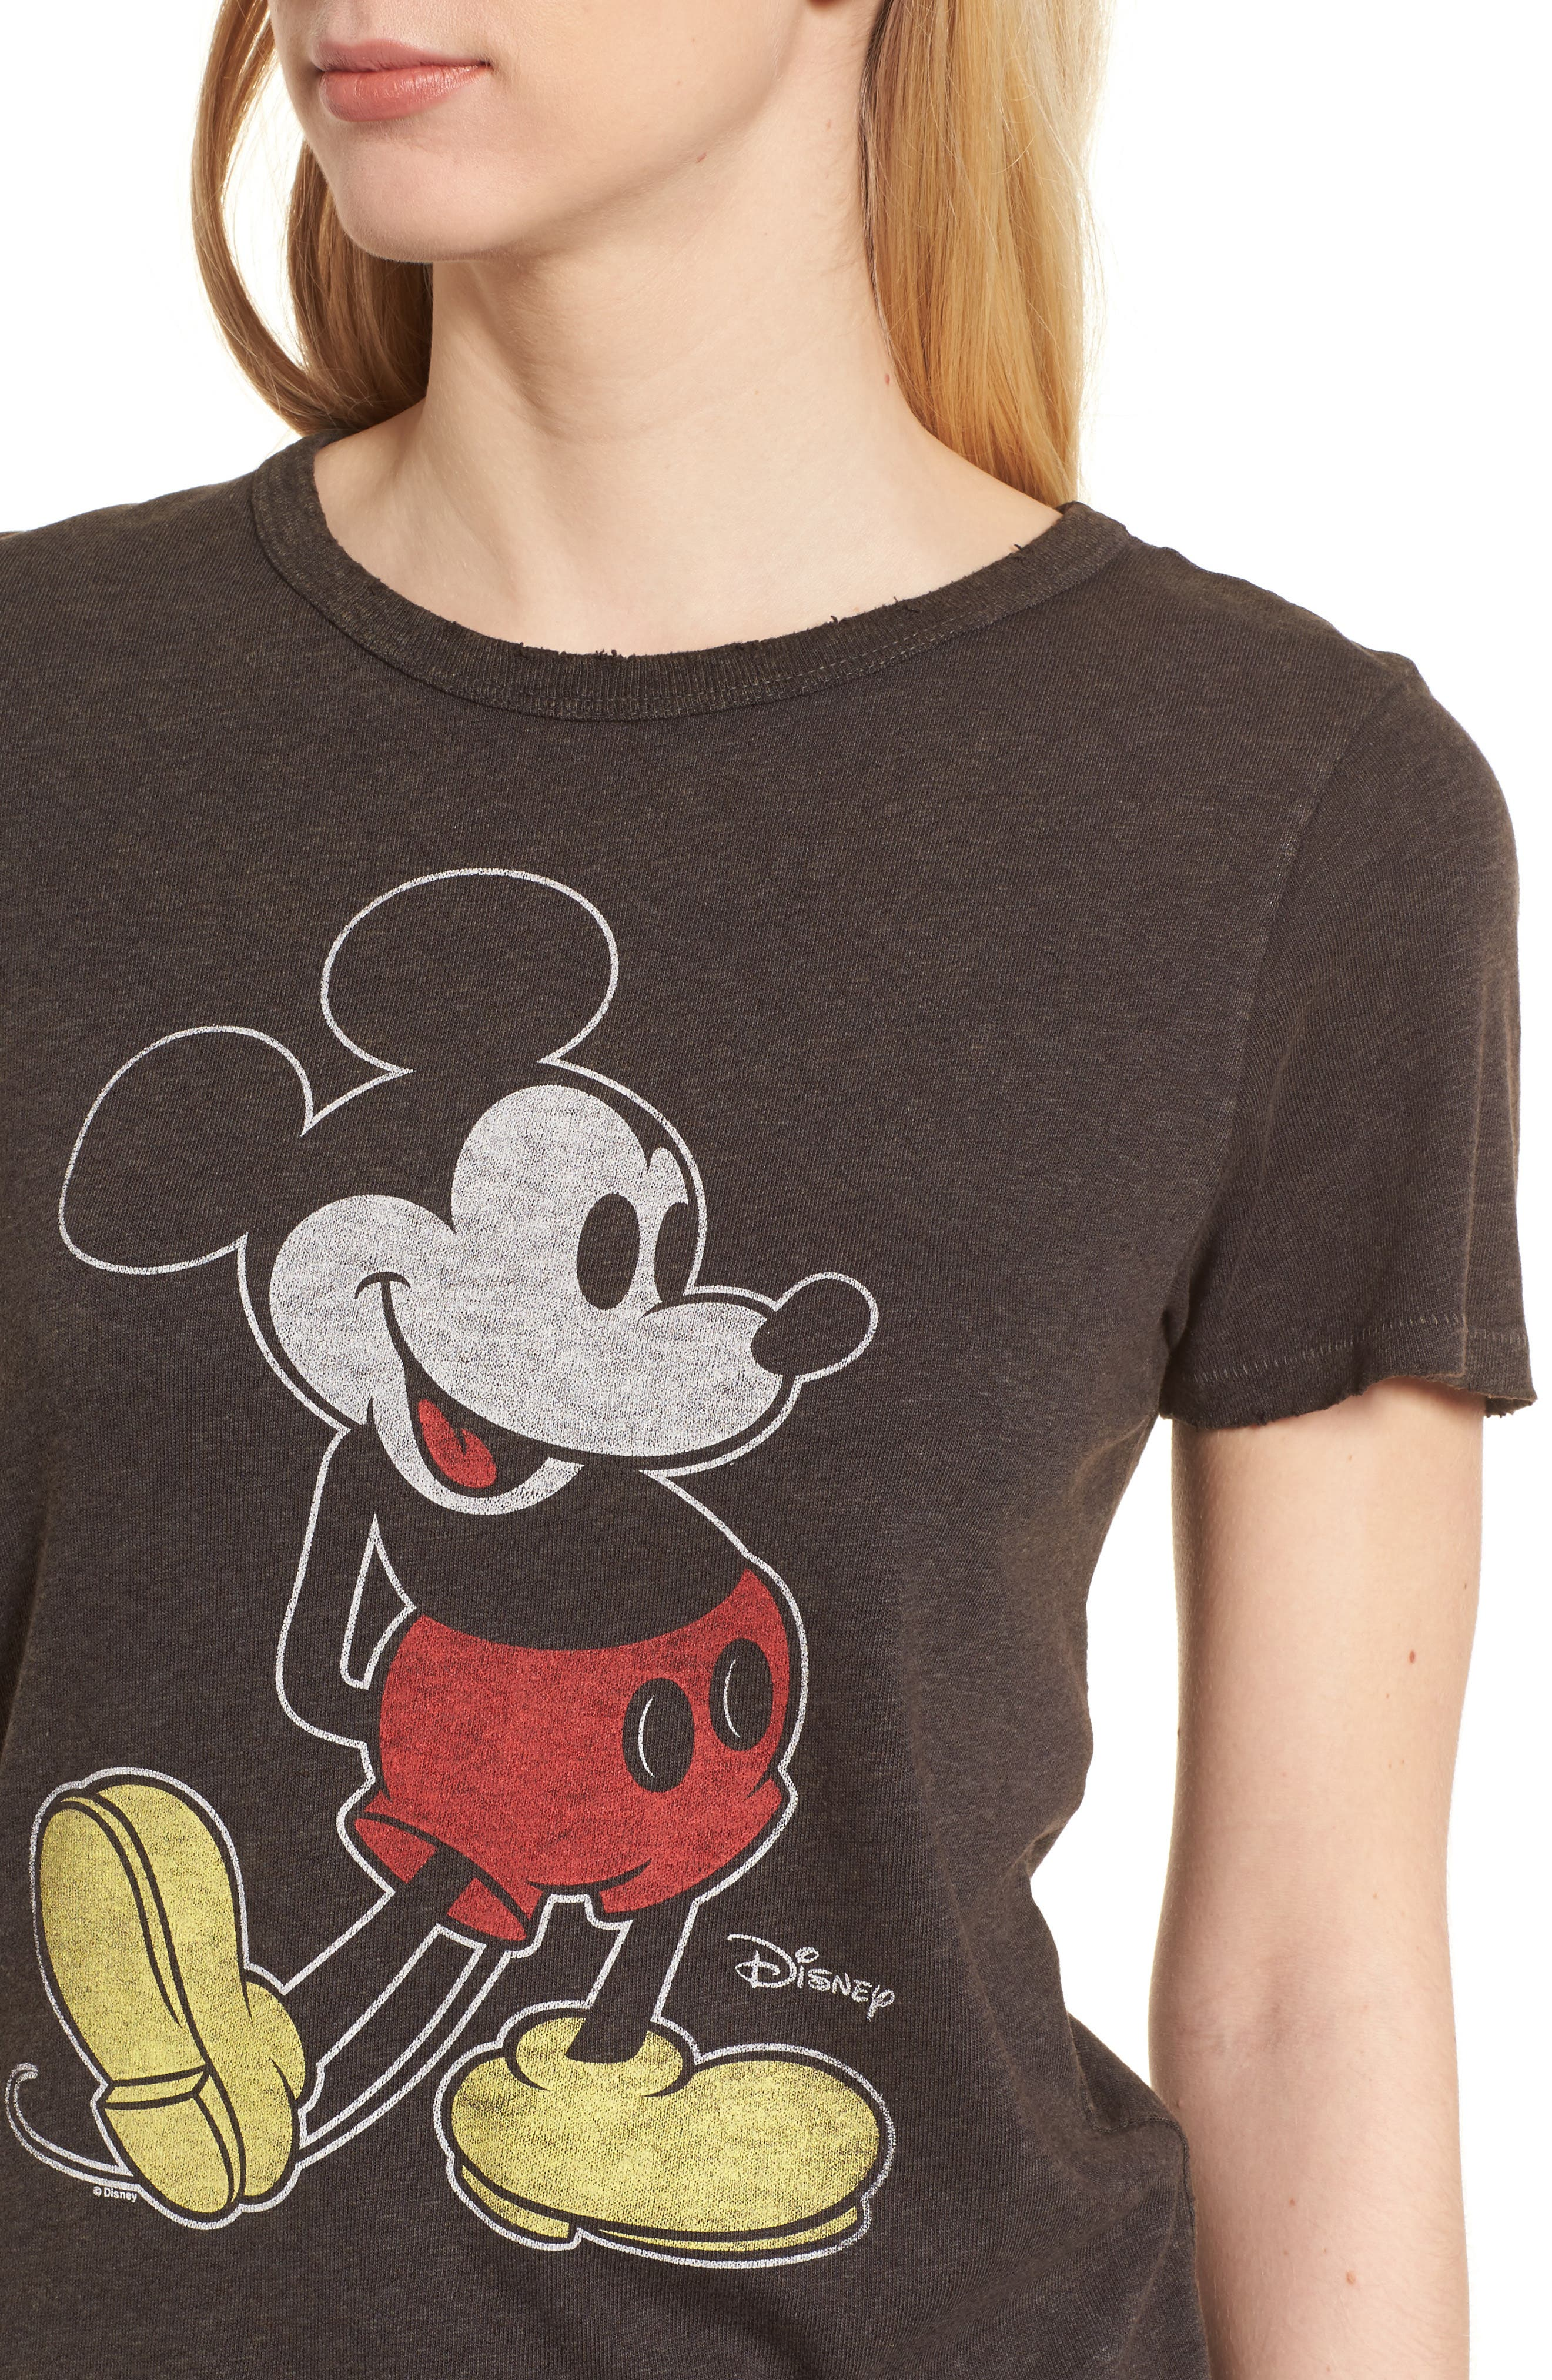 Disney<sup>®</sup> Mickey Mouse - Japan Tee,                             Alternate thumbnail 4, color,                             004